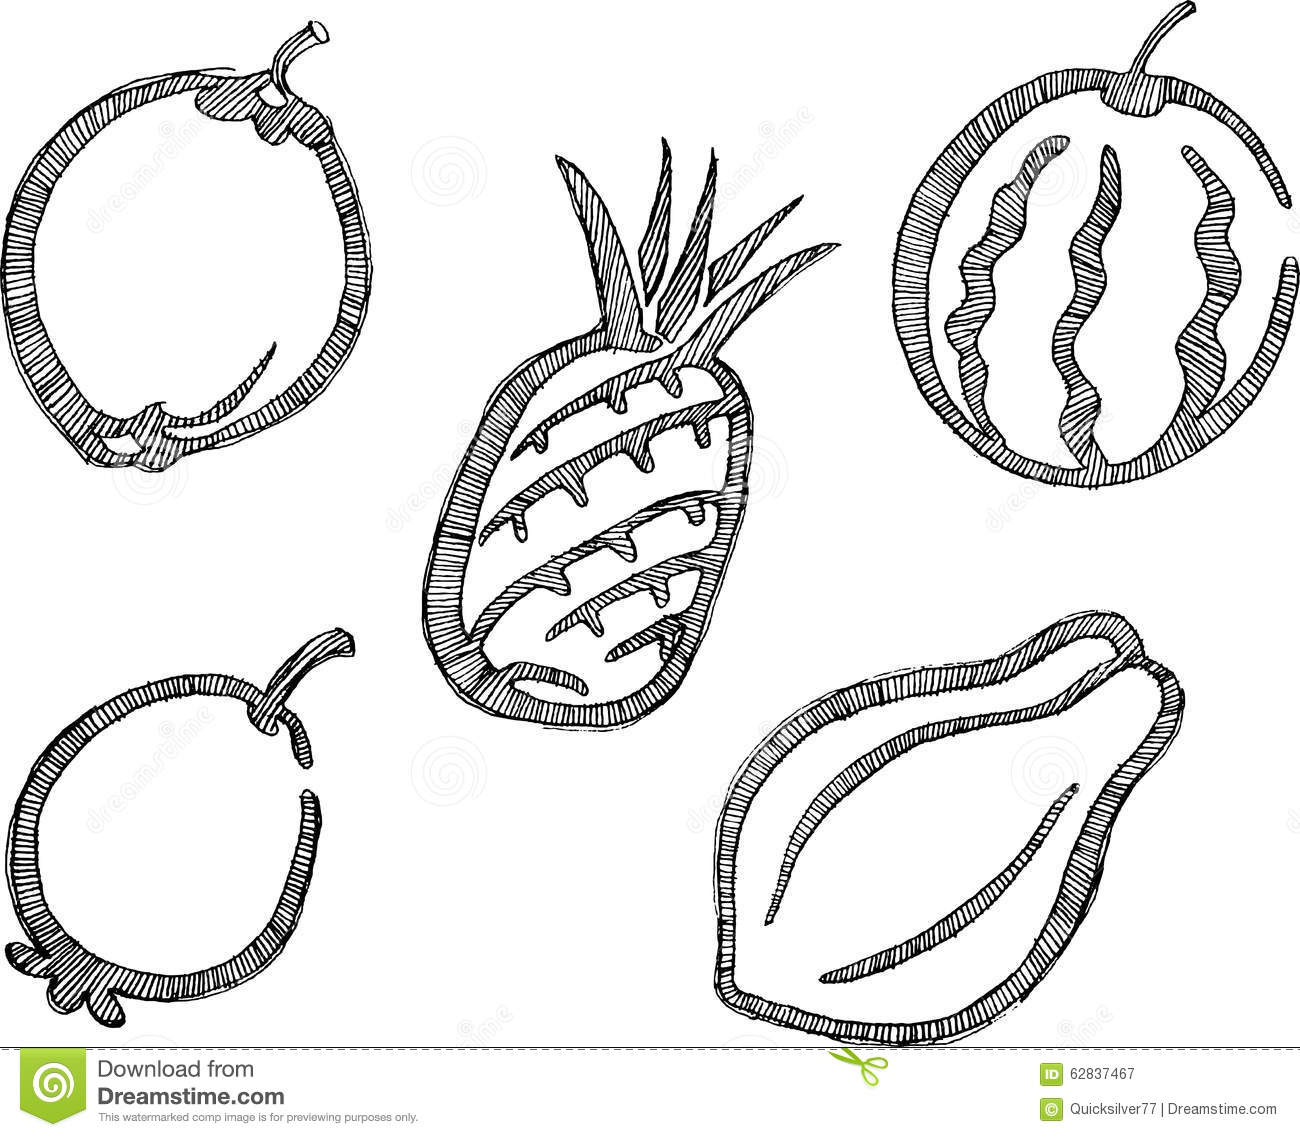 Stock Illustration Tropical Fruit Sketch Set Healthy Fruits Artwork Properly Grouped Derived My Hand Drawn Image62837467 on Eating Fruit